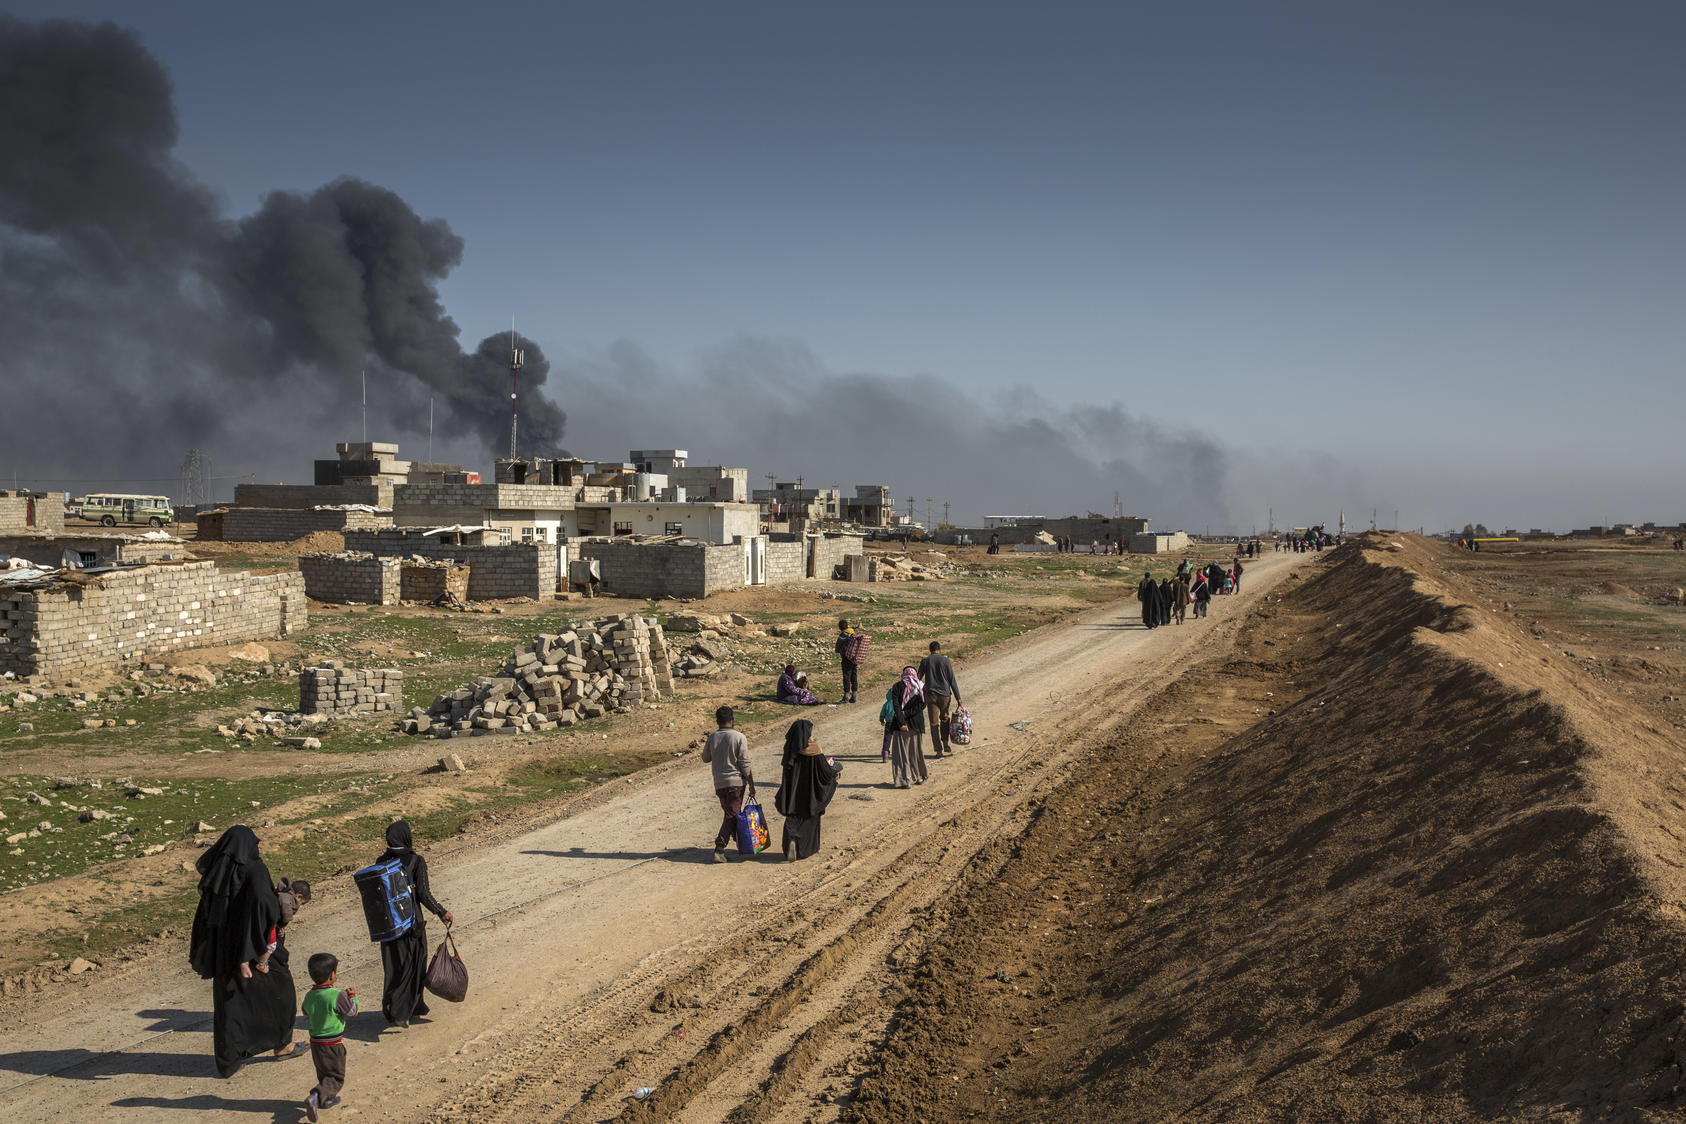 People flee the fighting between Iraqi security forces and Islamic State militants in Mosul, Iraq. Photo courtesy of Ivor Prickett/The New York Times.